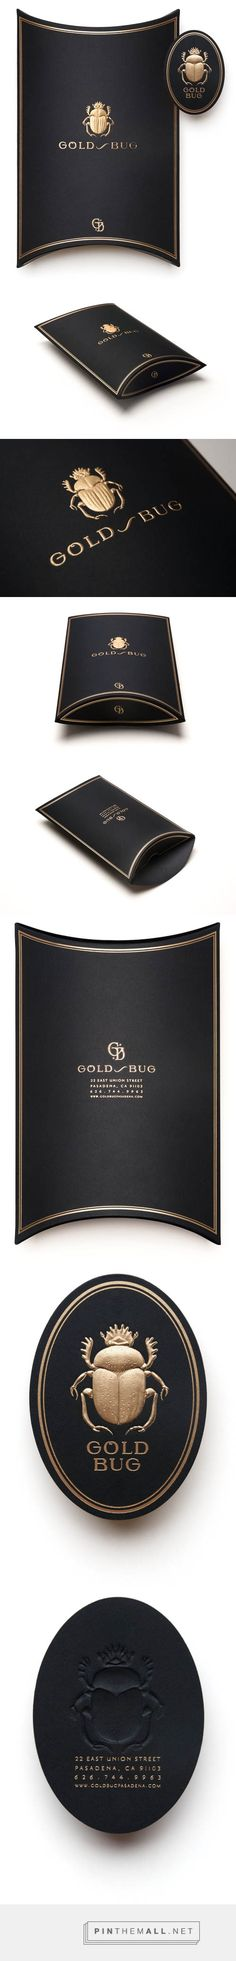 Graphic Design Packaging Pressure Printing Gold Bug by Packaging Diva PD Logo Design, Design Poster, Label Design, Branding Design, Print Design, Web Design, Package Design, Design Homes, Design Agency